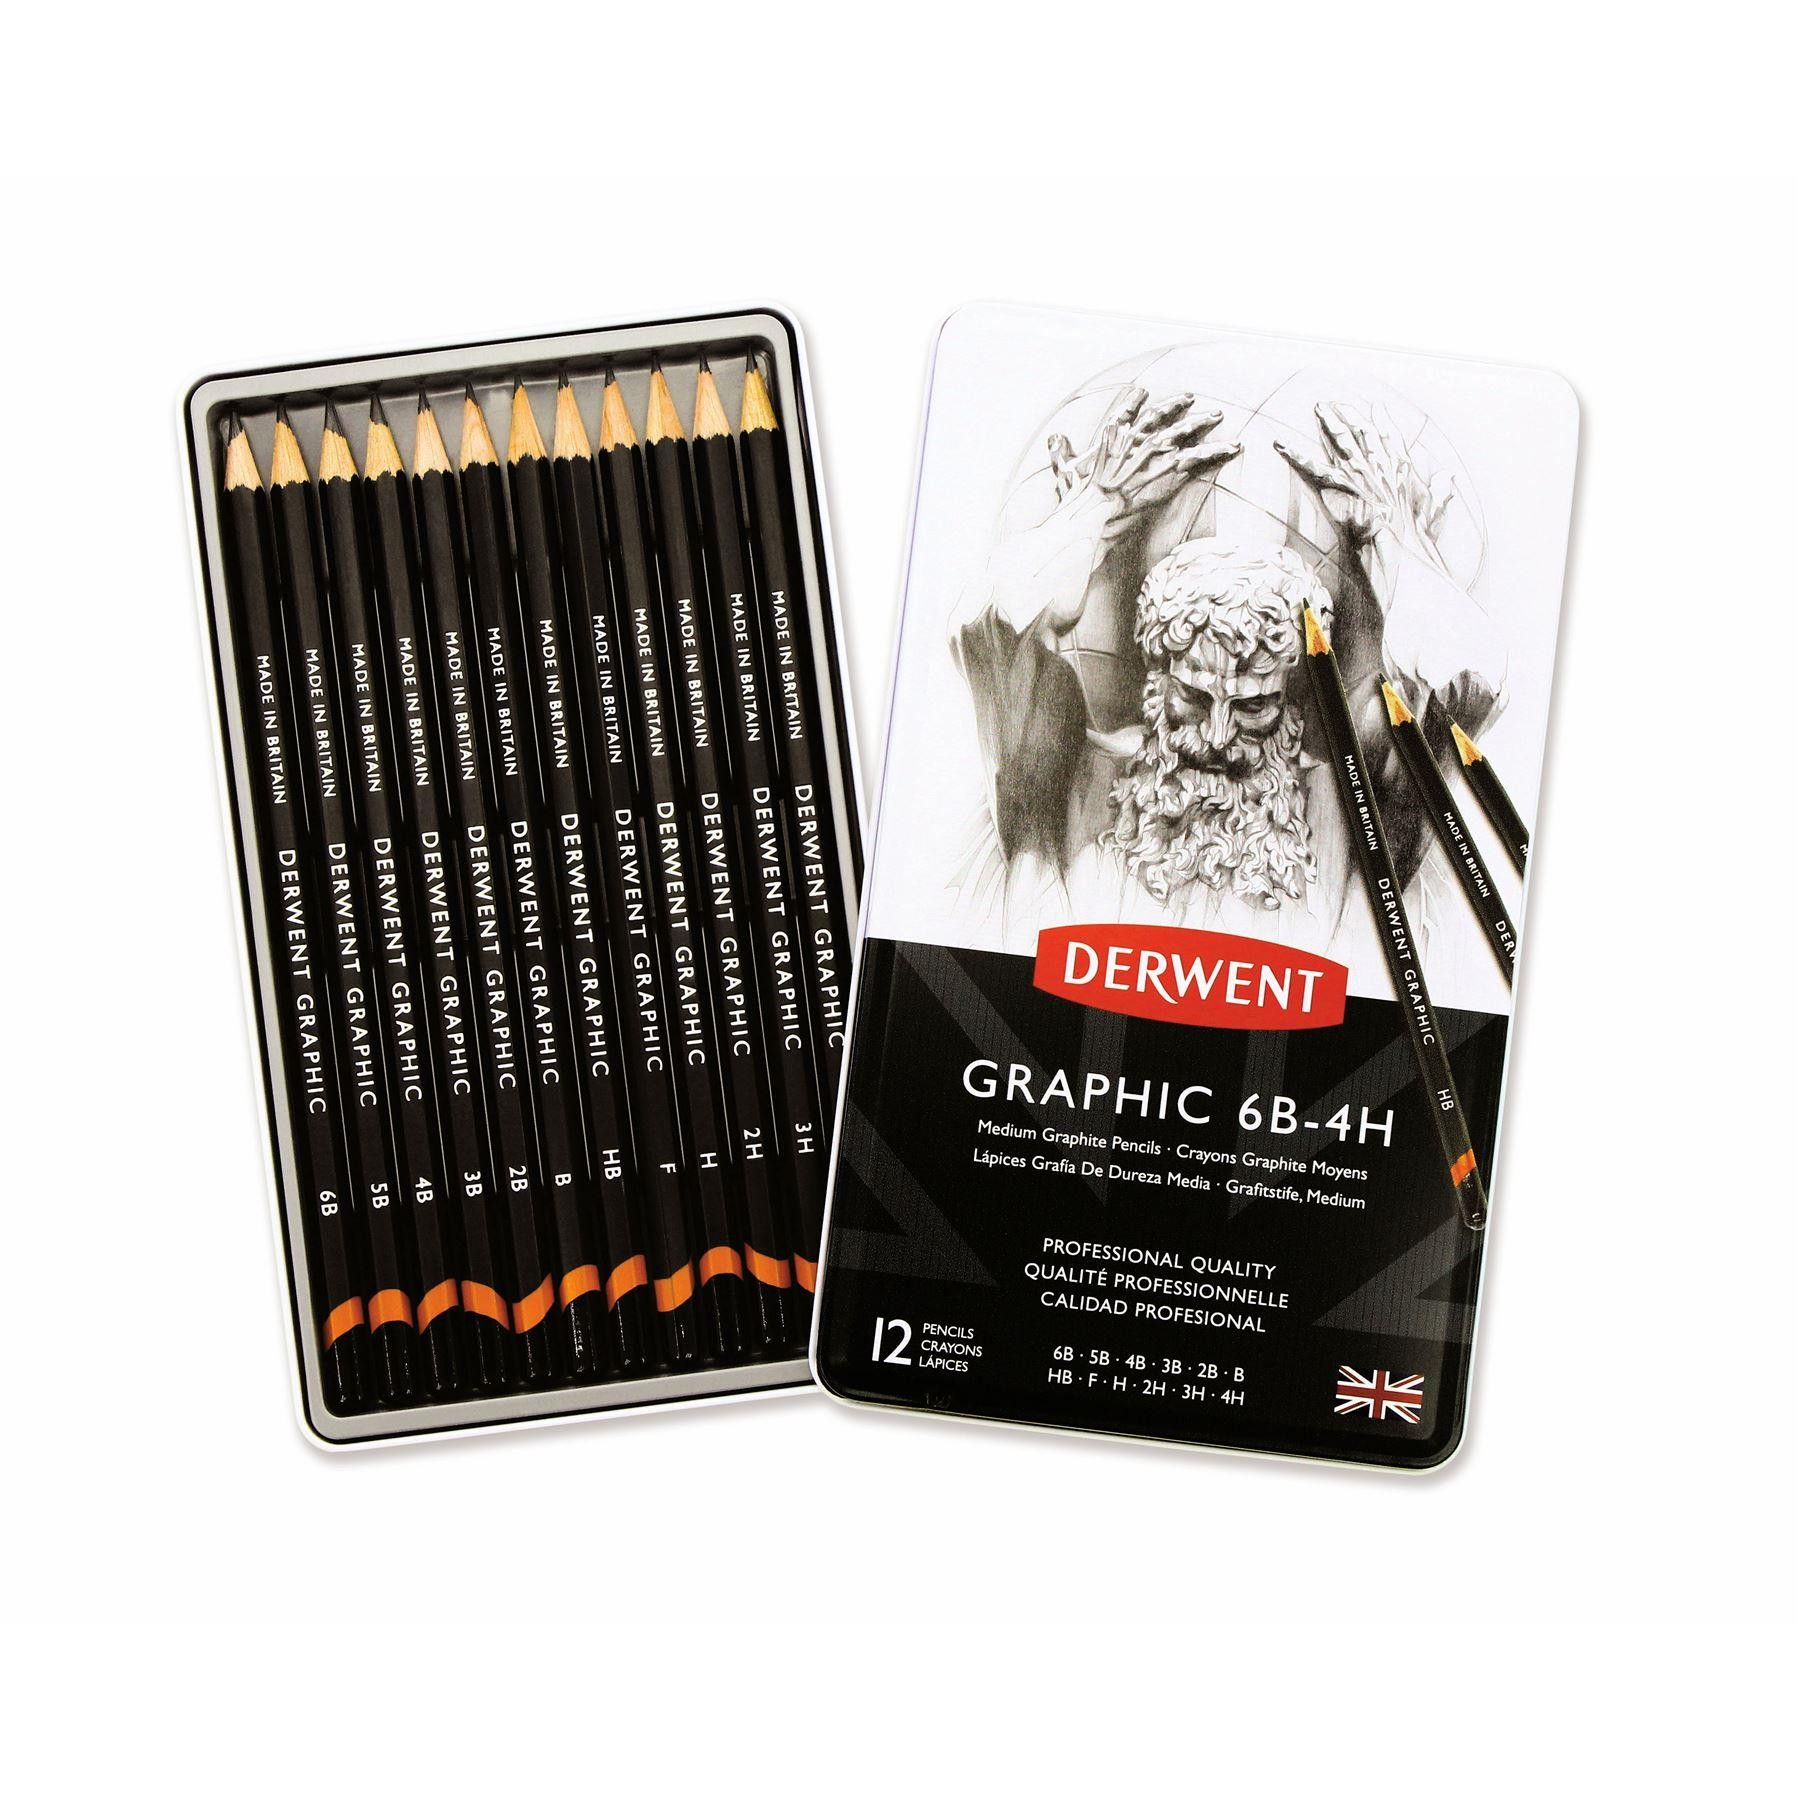 Derwent Artists Graphic graded pencil, 12 or 24 Tin sets